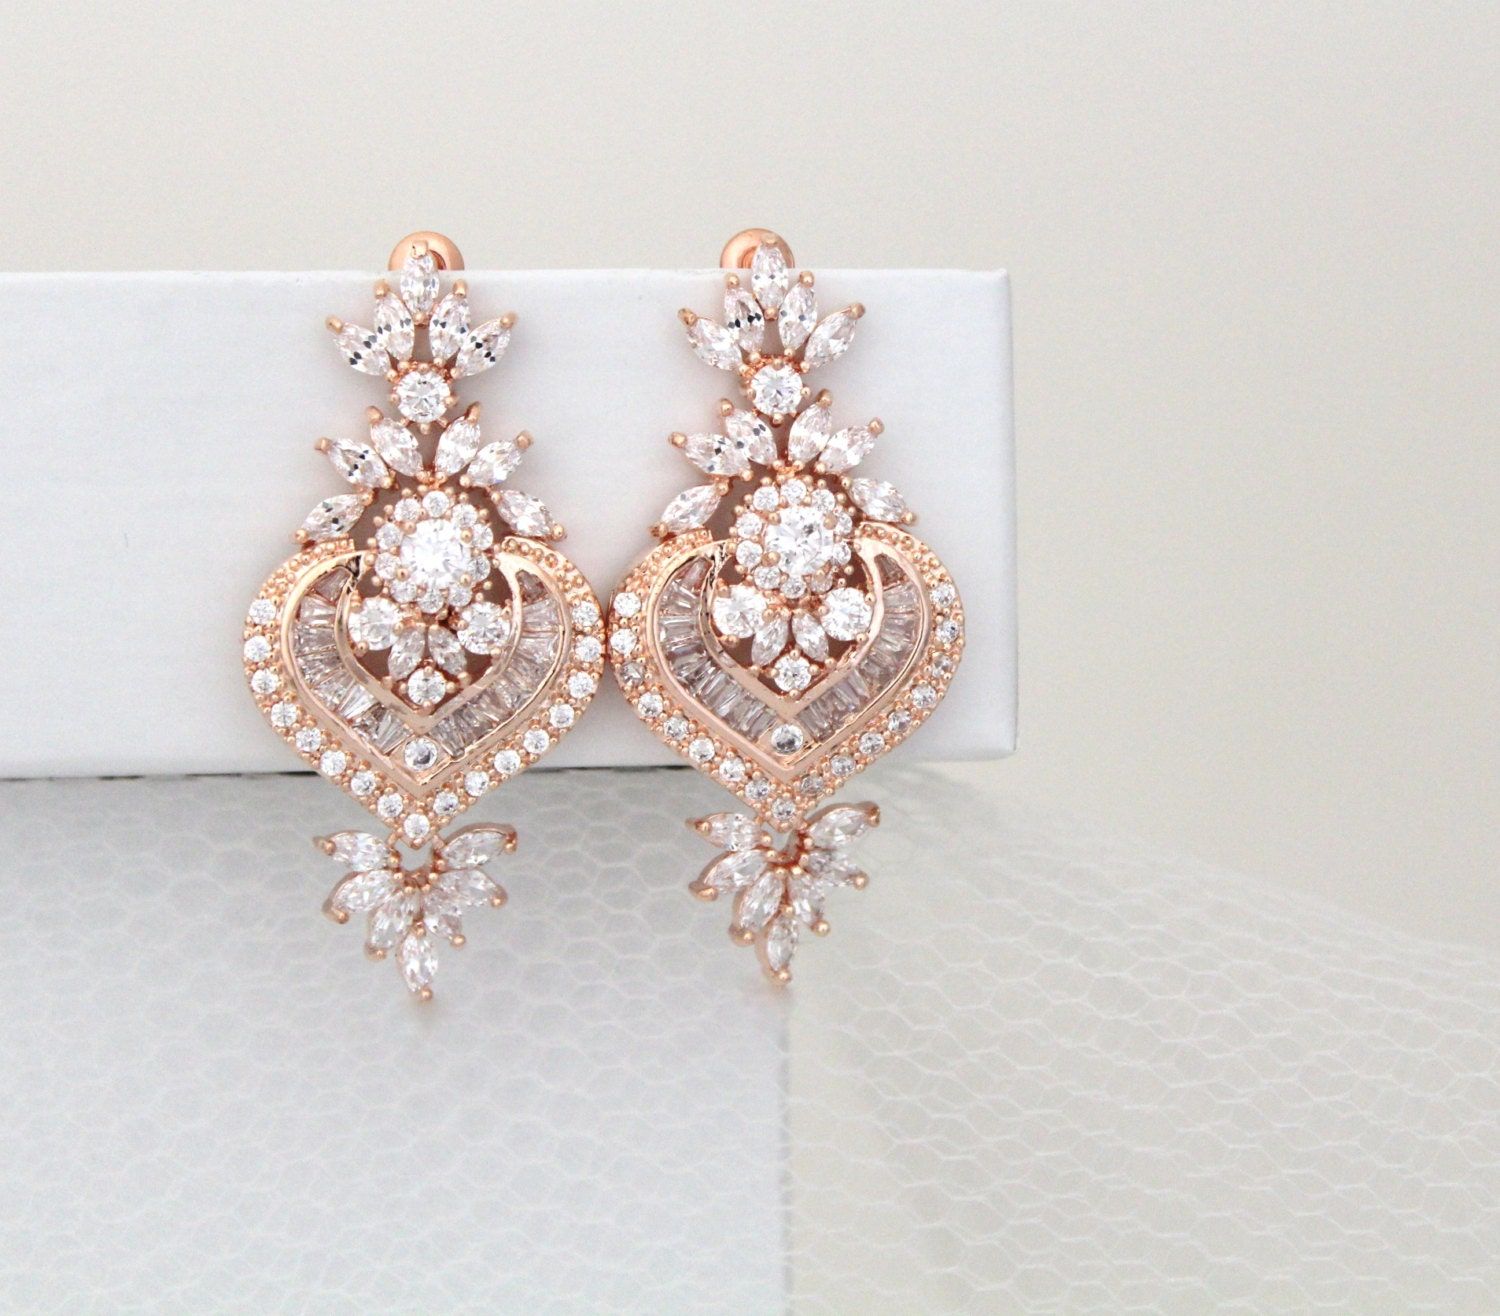 Rose Gold Bridal earrings Crystal wedding earrings Wedding